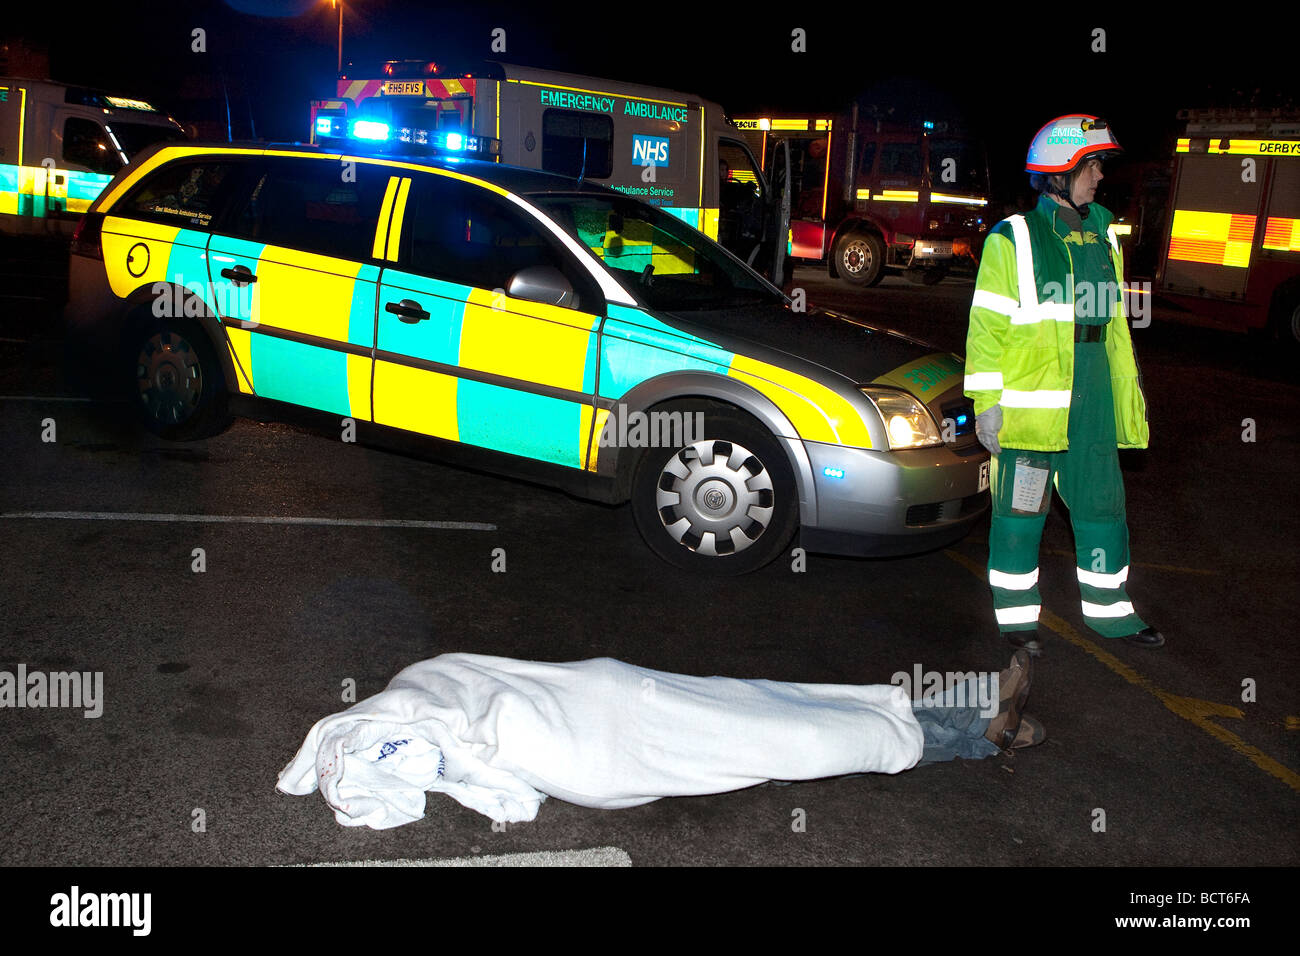 Road Traffic Accident Simulation Stock Photos & Road Traffic ...